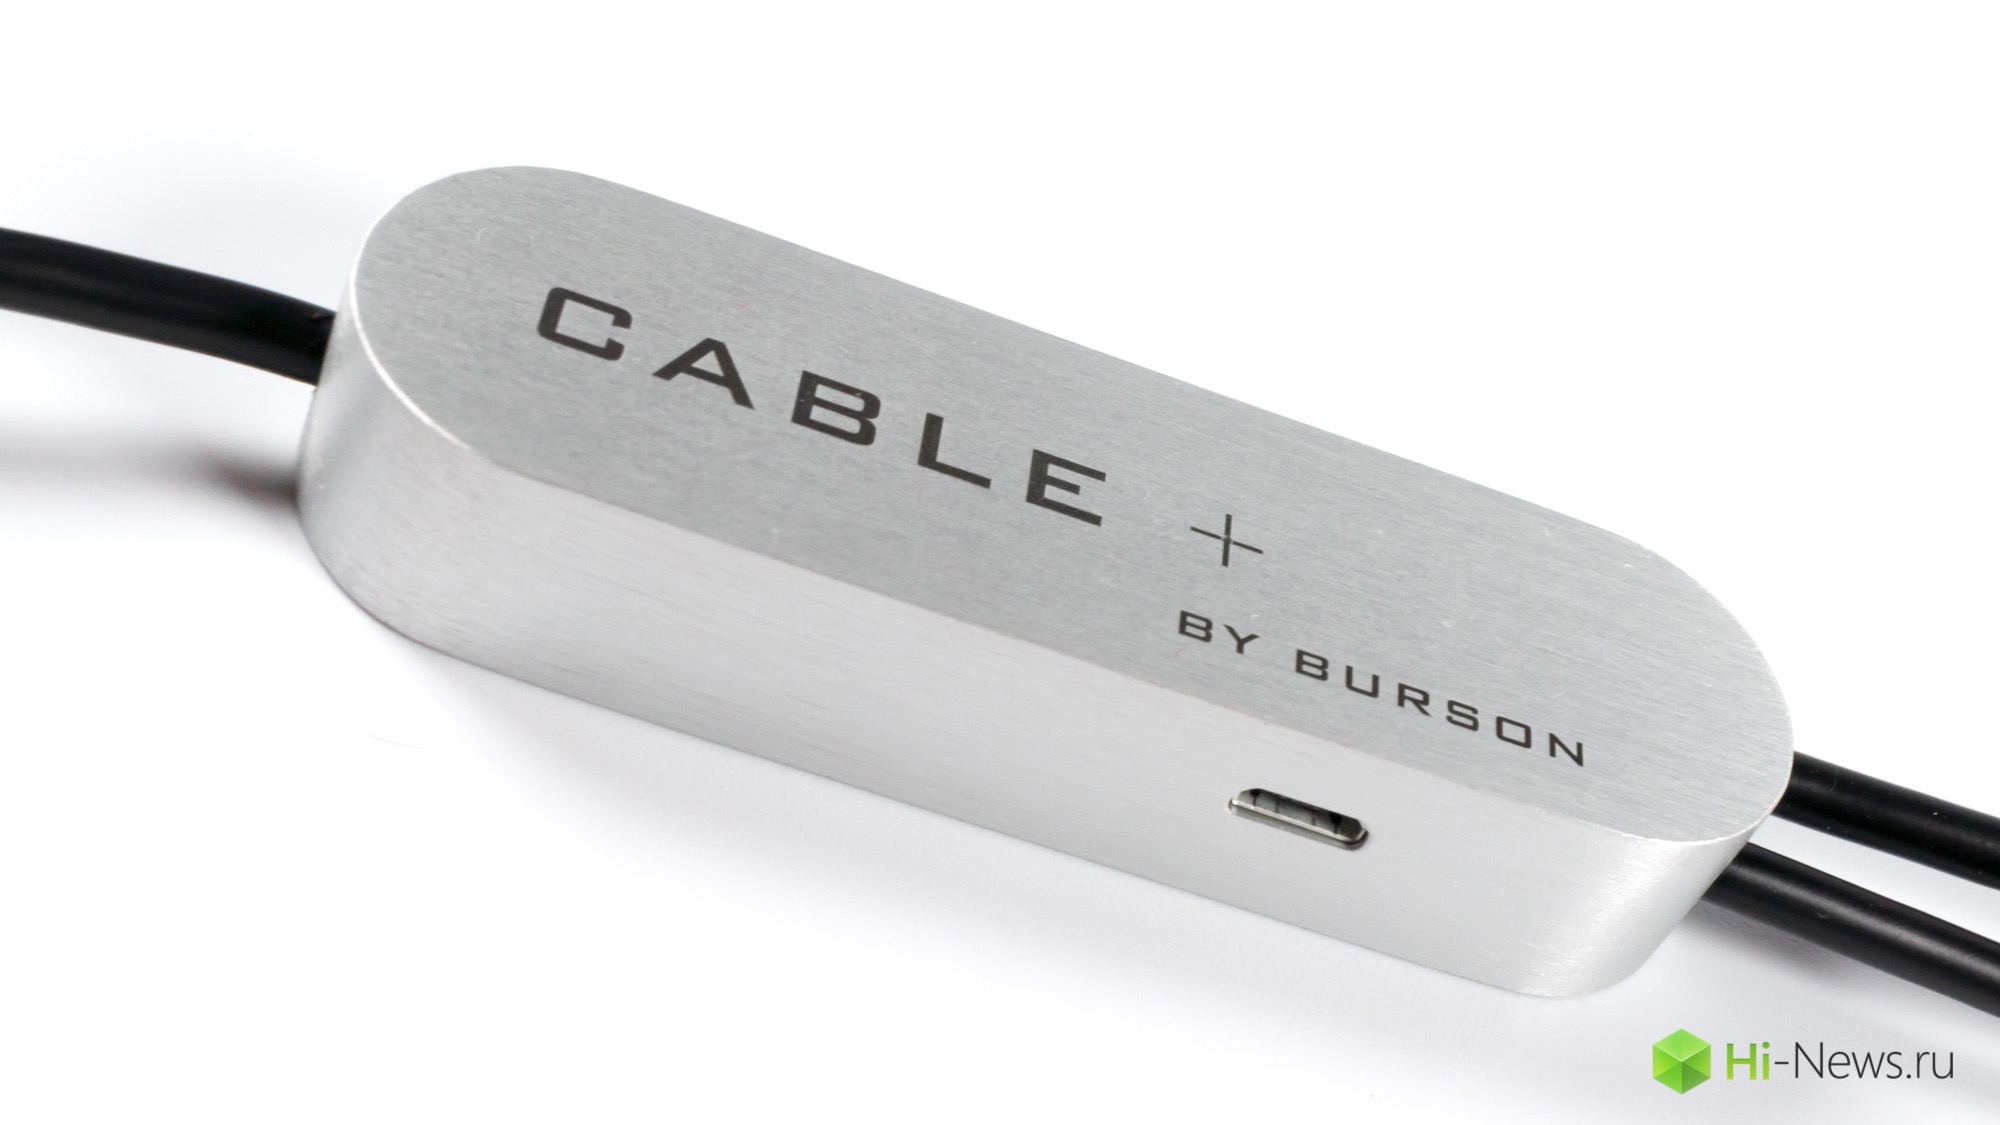 Overview of the active interconnecting cables Burson Audio Cable